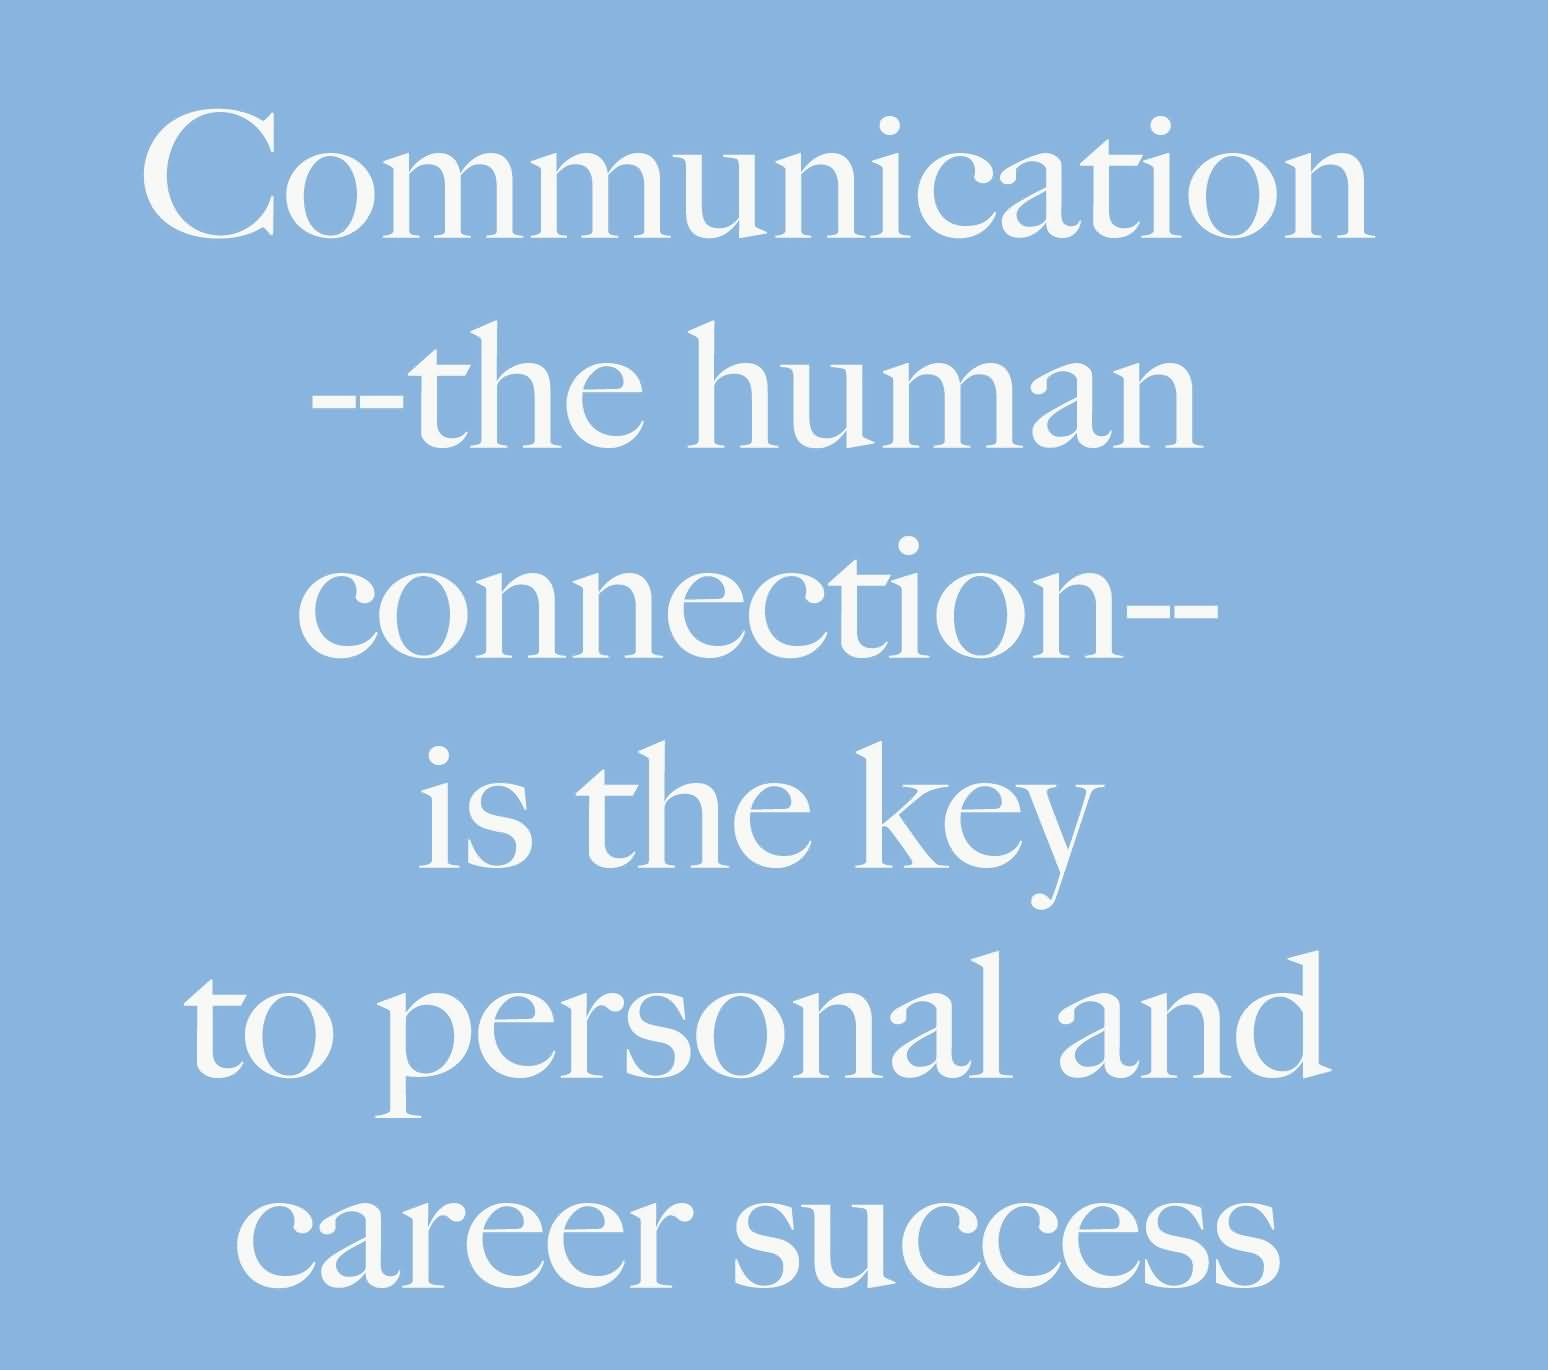 Communication - the human connection - is the key to personal and career success